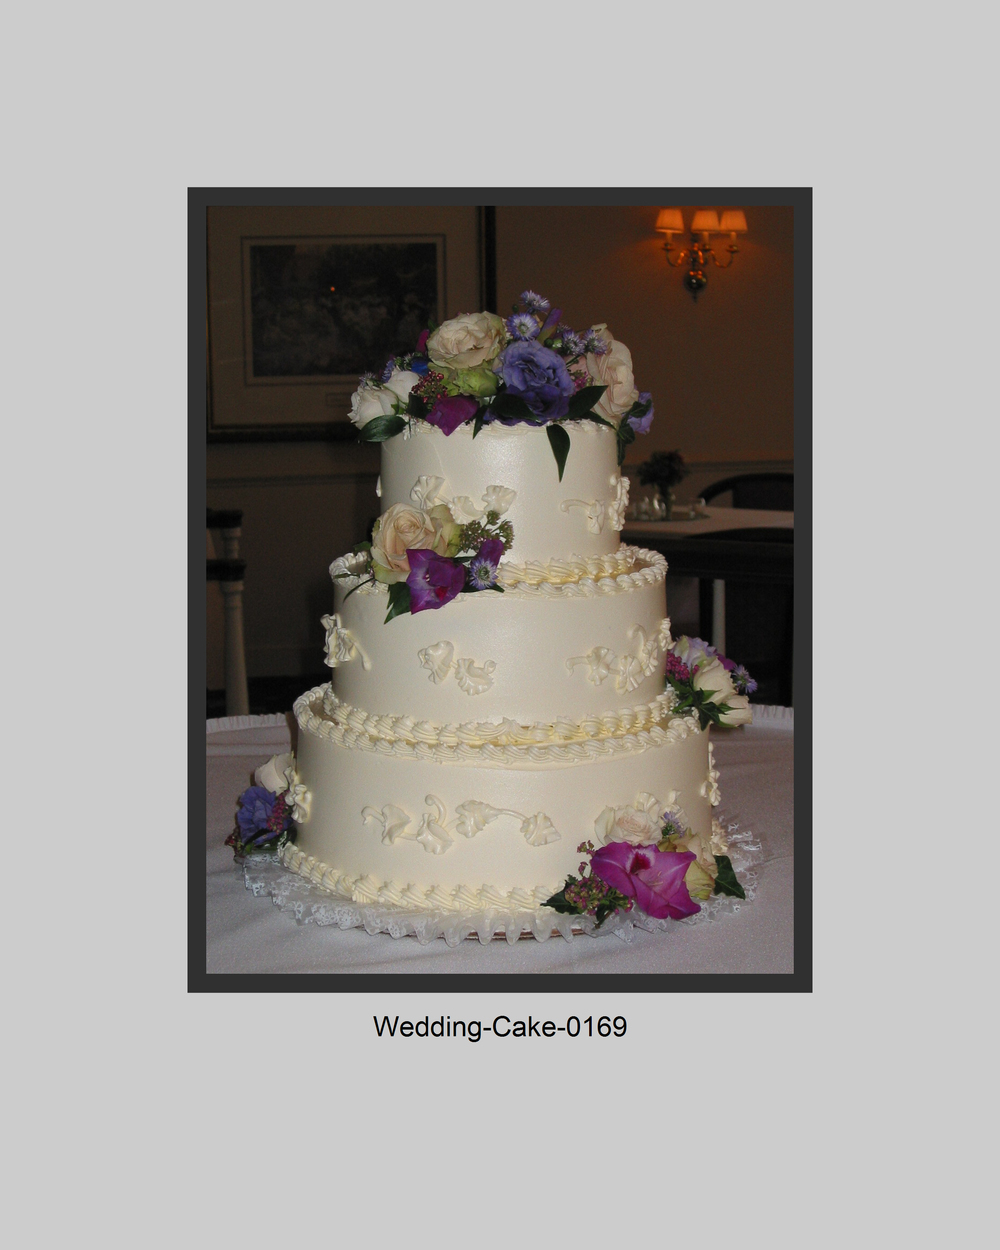 Wedding-Cake-Prints-0169.jpg